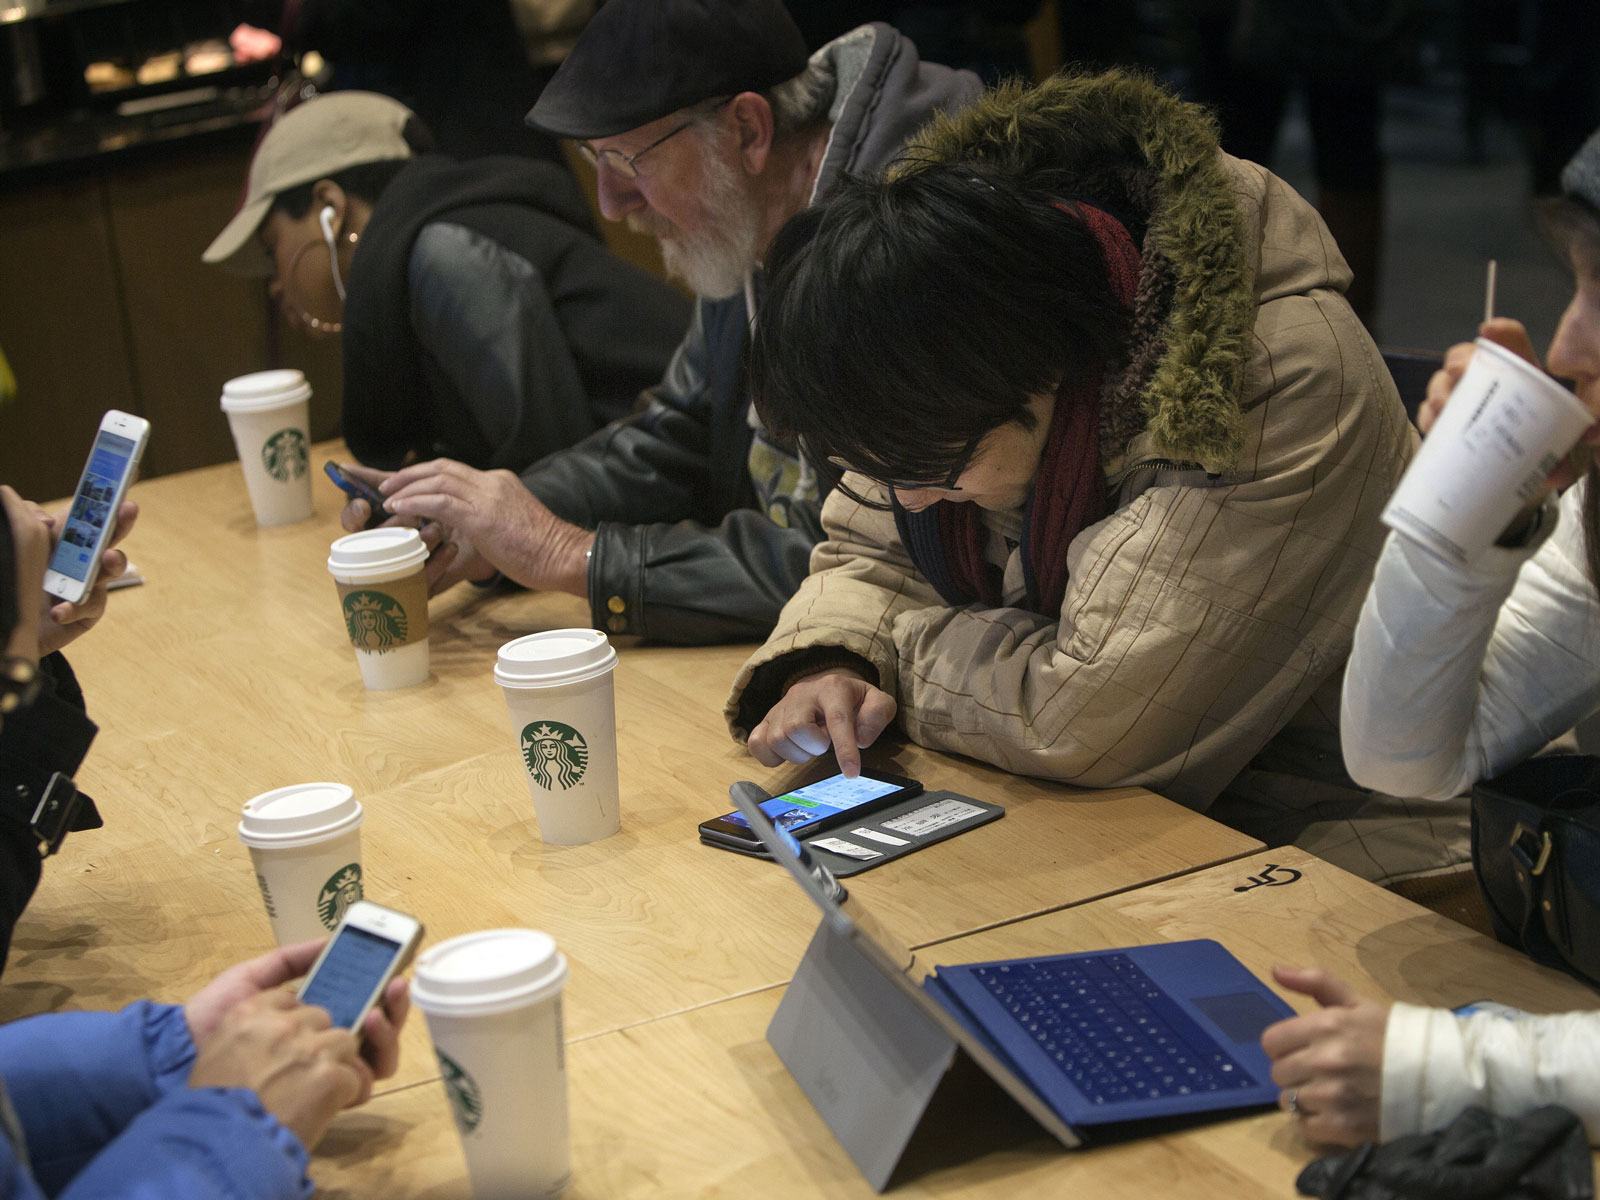 Starbucks Customer Policy: 5 Things to Know About the New